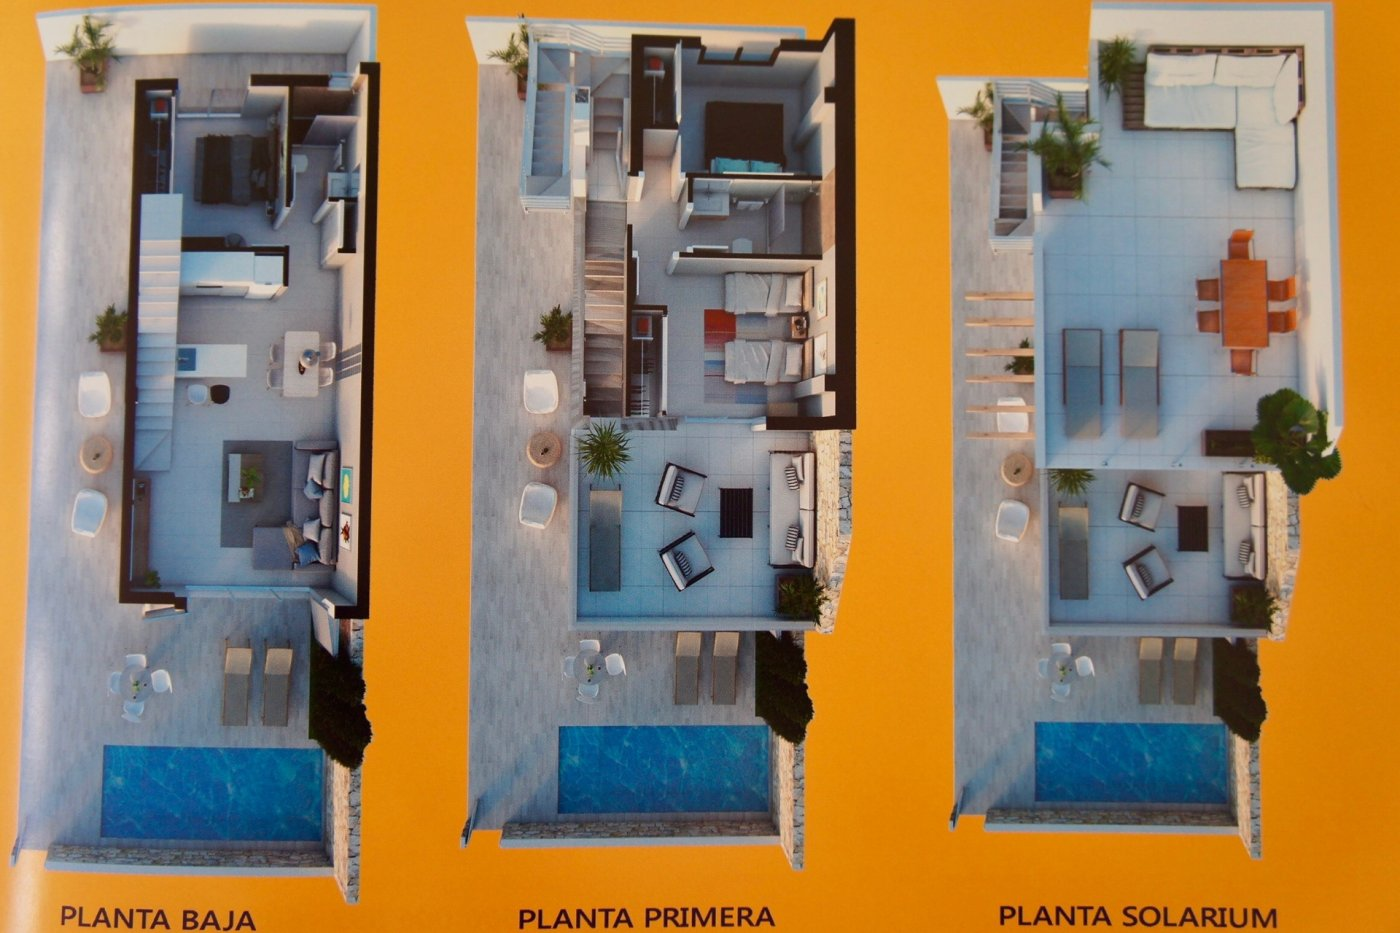 Image 2  ref 3265-02929 for sale in Los Alcázares Spain - Quality Homes Costa Cálida